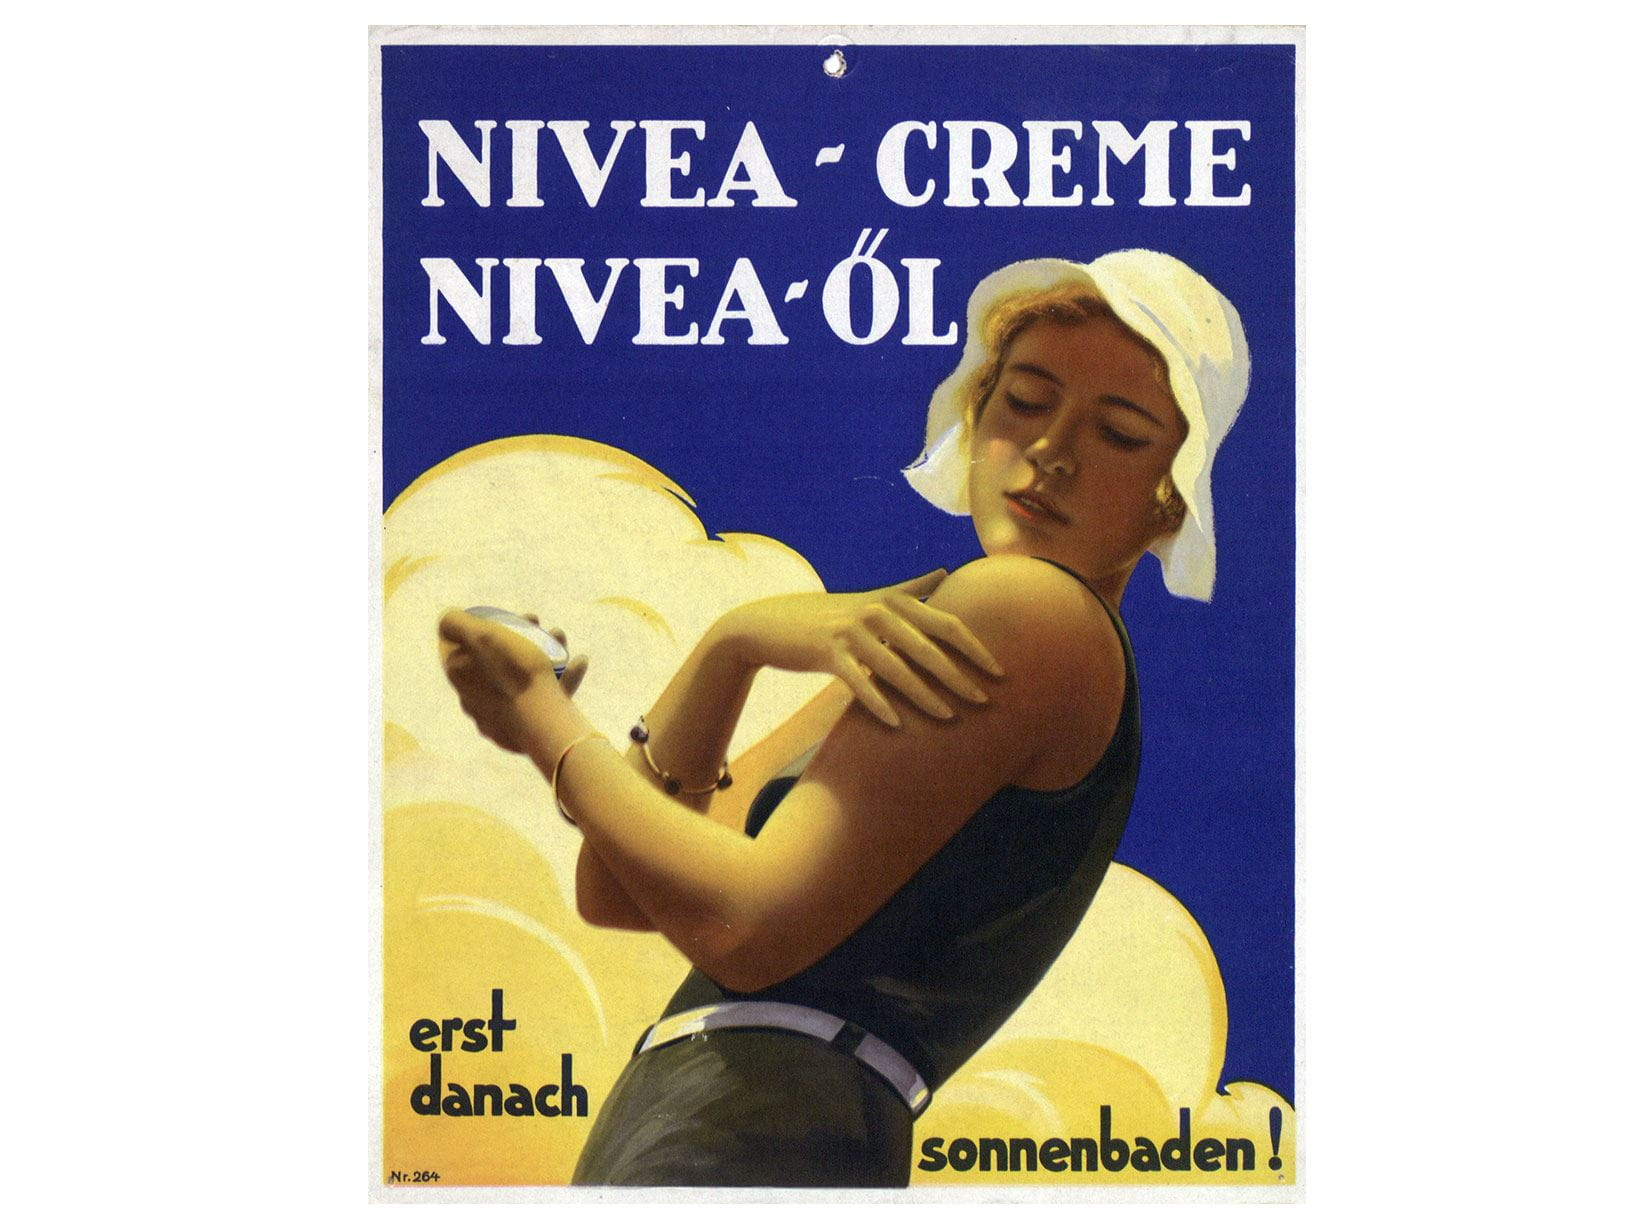 NIVEA advertising poster for cream and oil for sunbathing from 1931